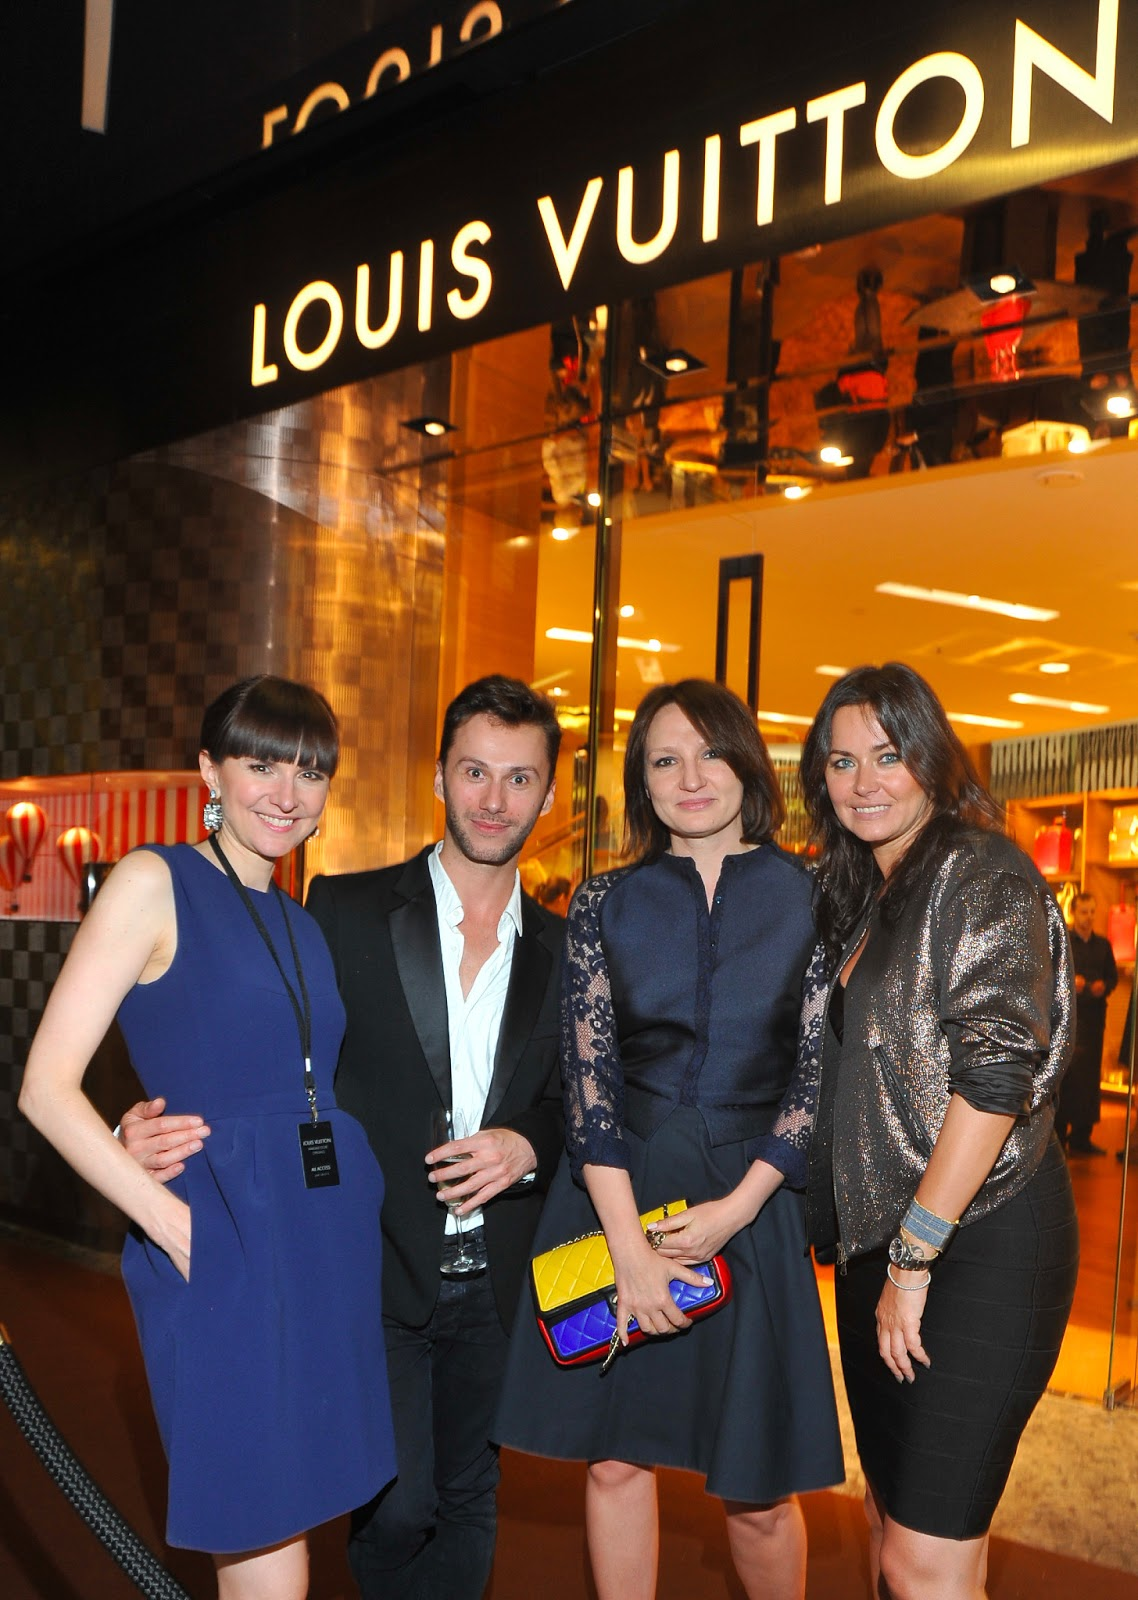 cbf6c4715d8b0 Oh la class comes to Warsaw! The opening of Louis Vuitton. | magda ...